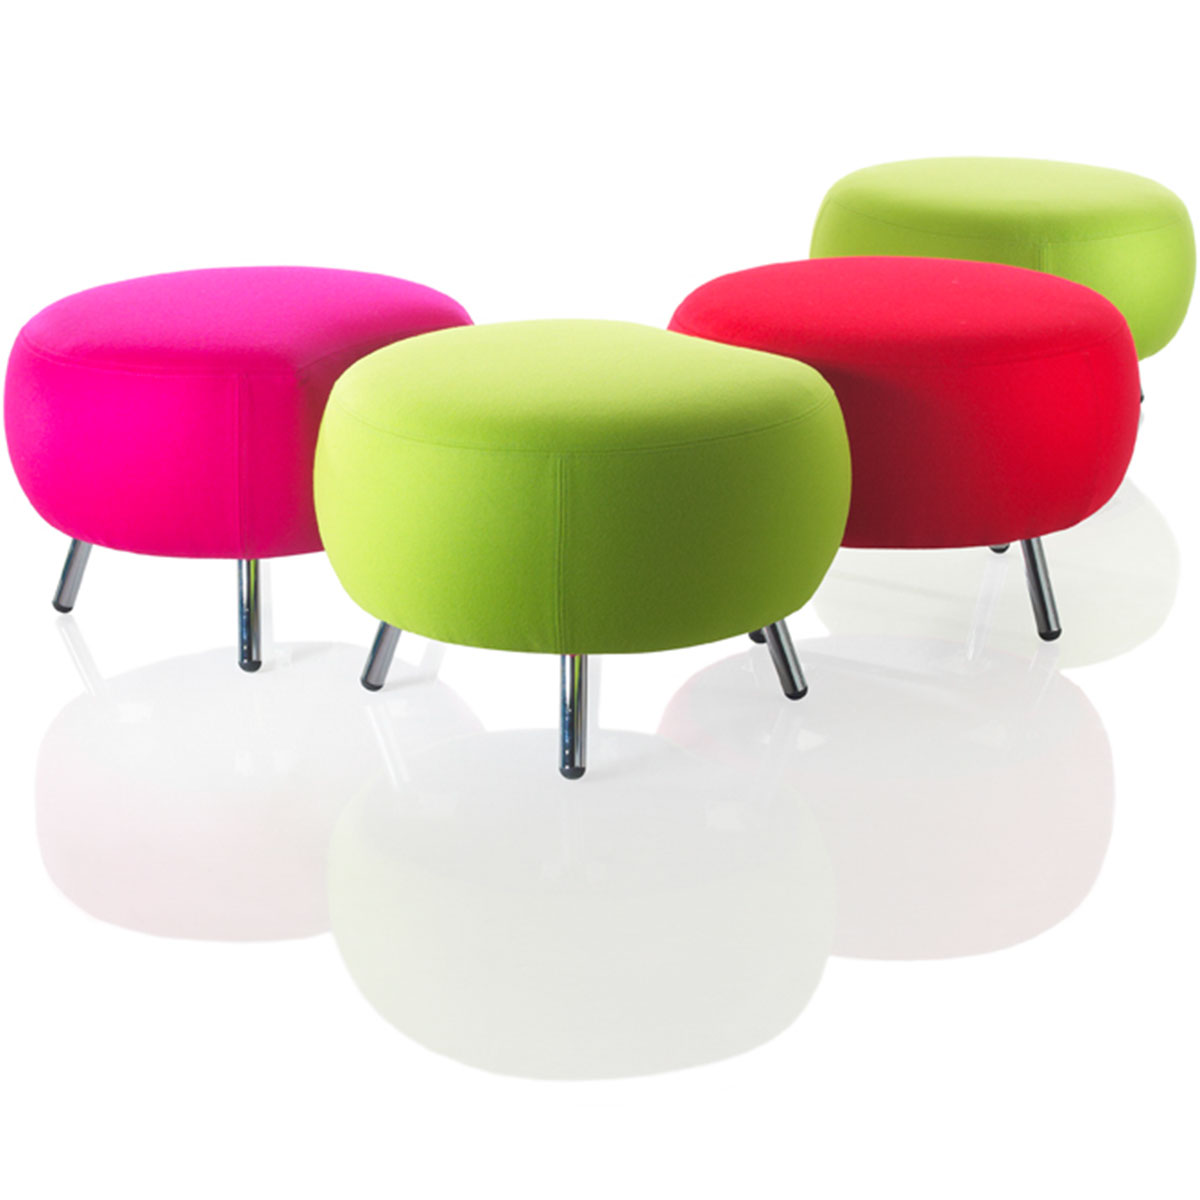 Alb-pouffes-POU7-group